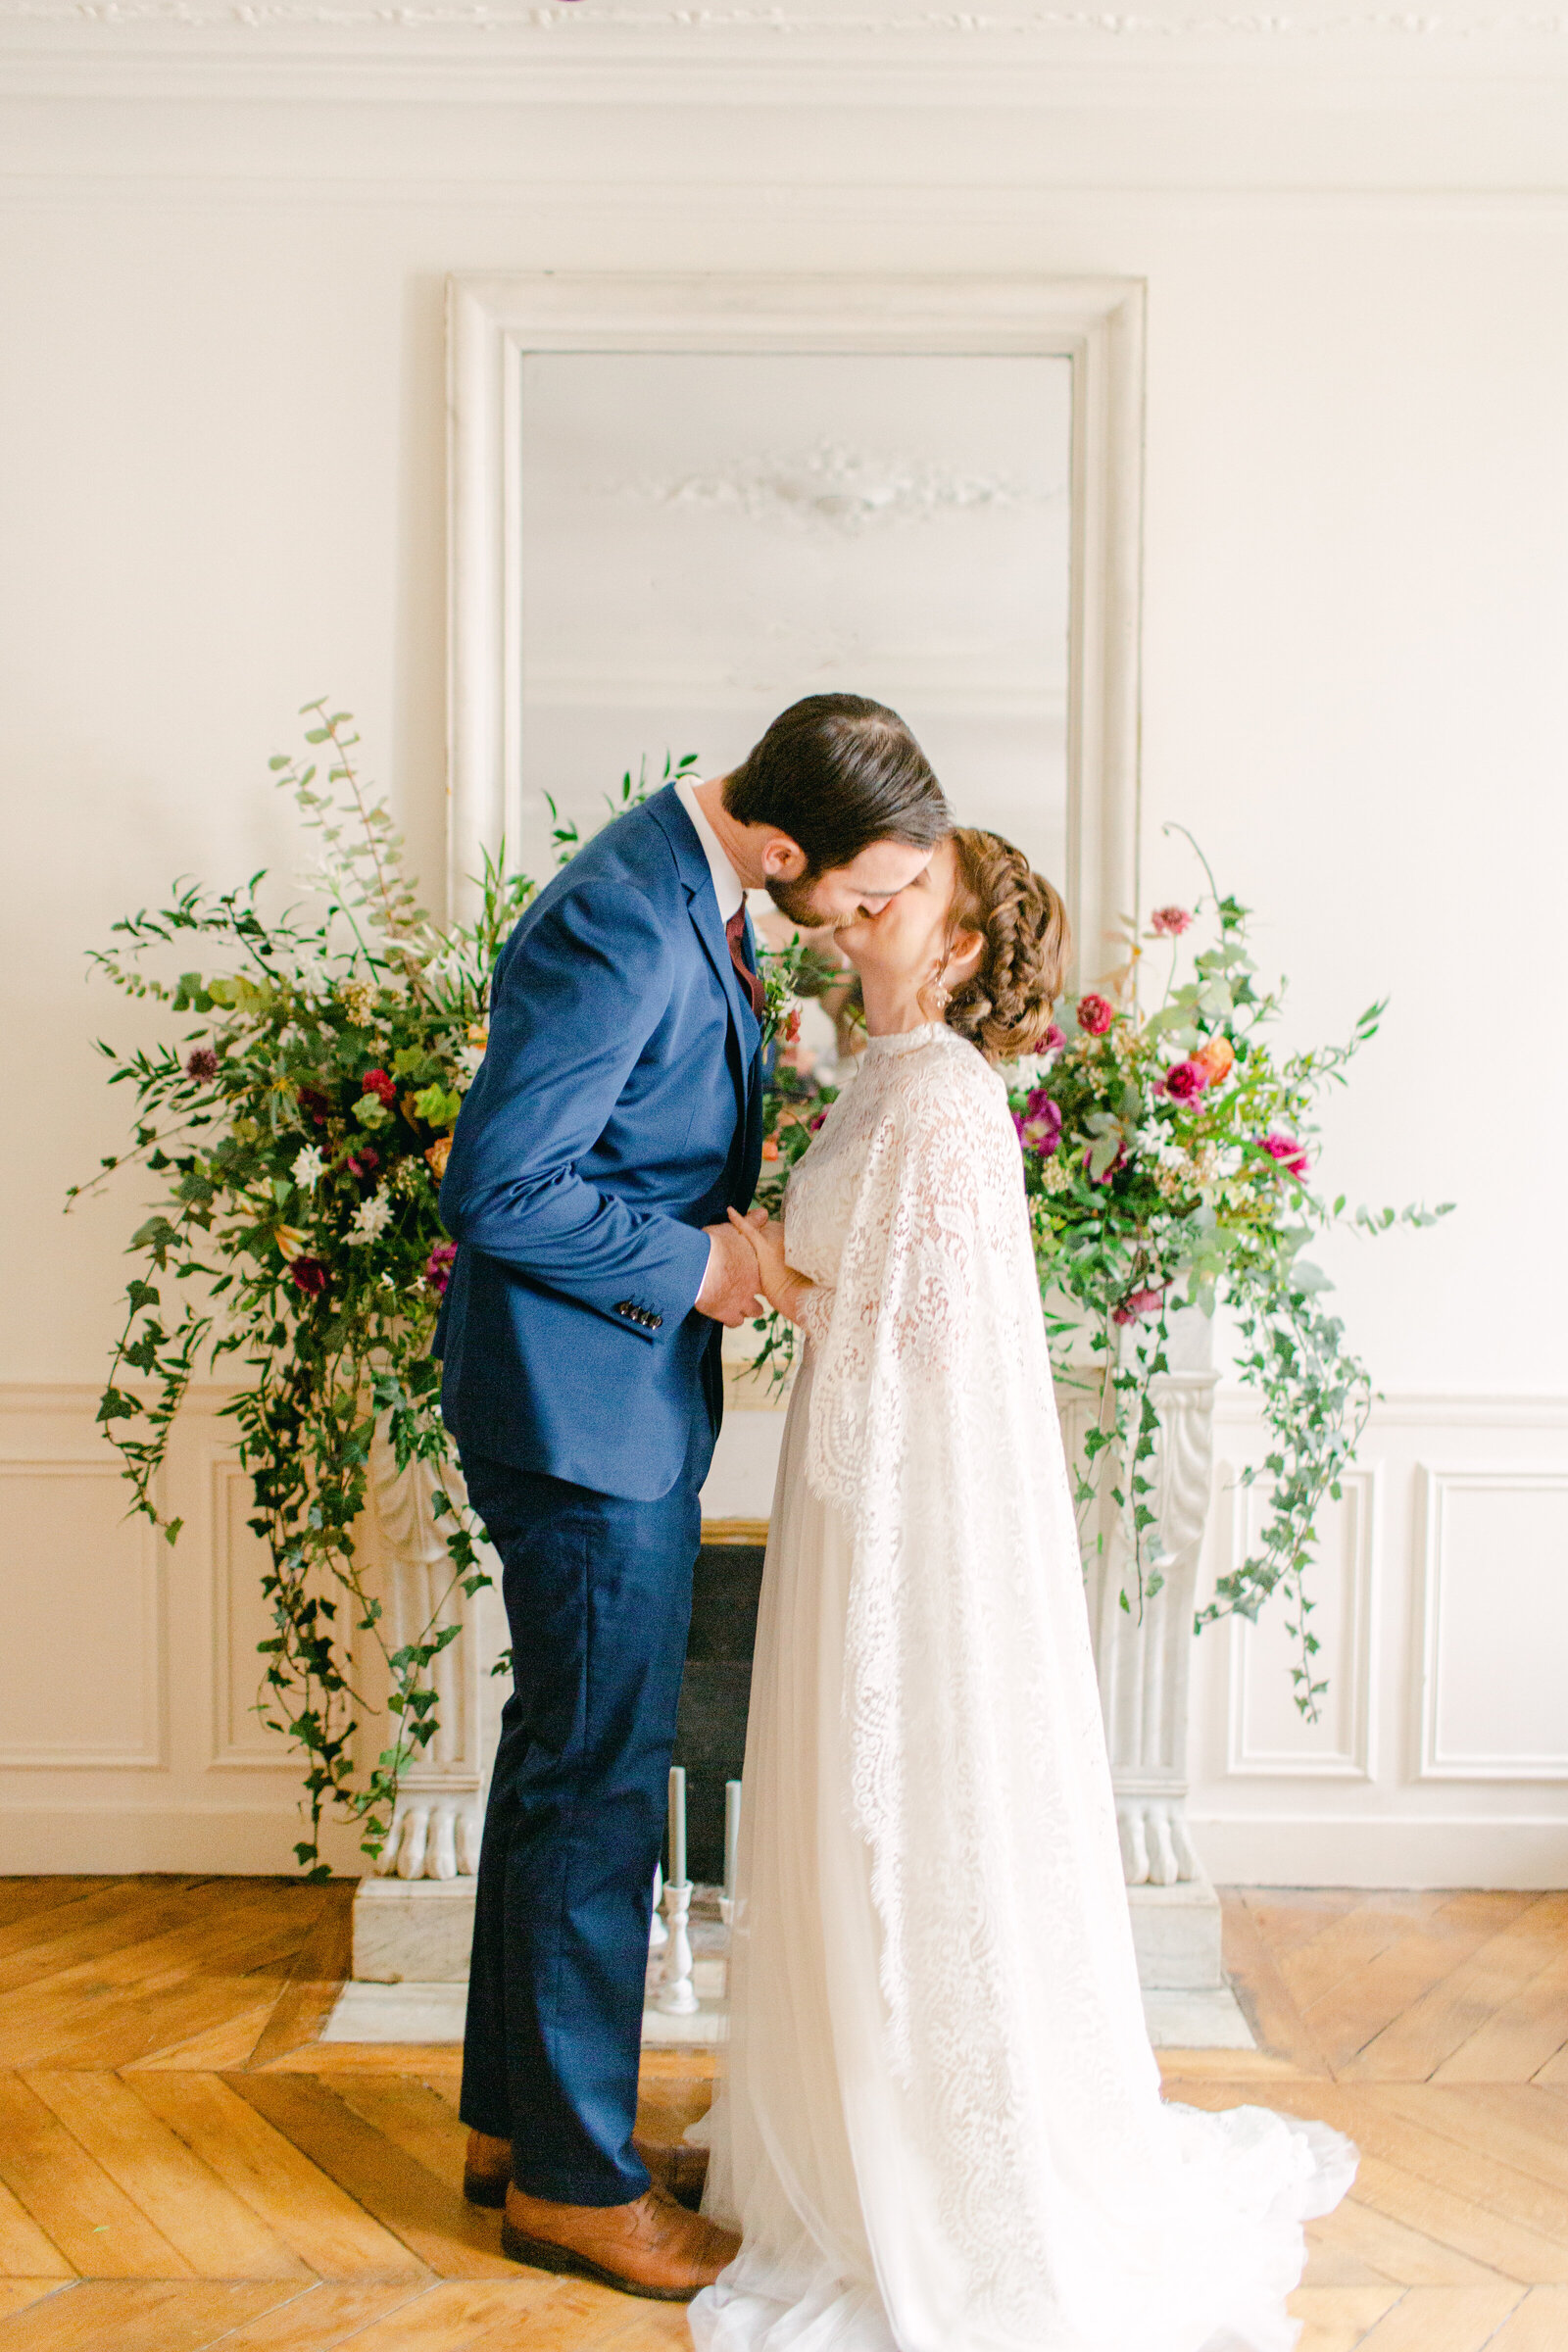 bride and groom kiss in front of fireplace mantel in paris apartment